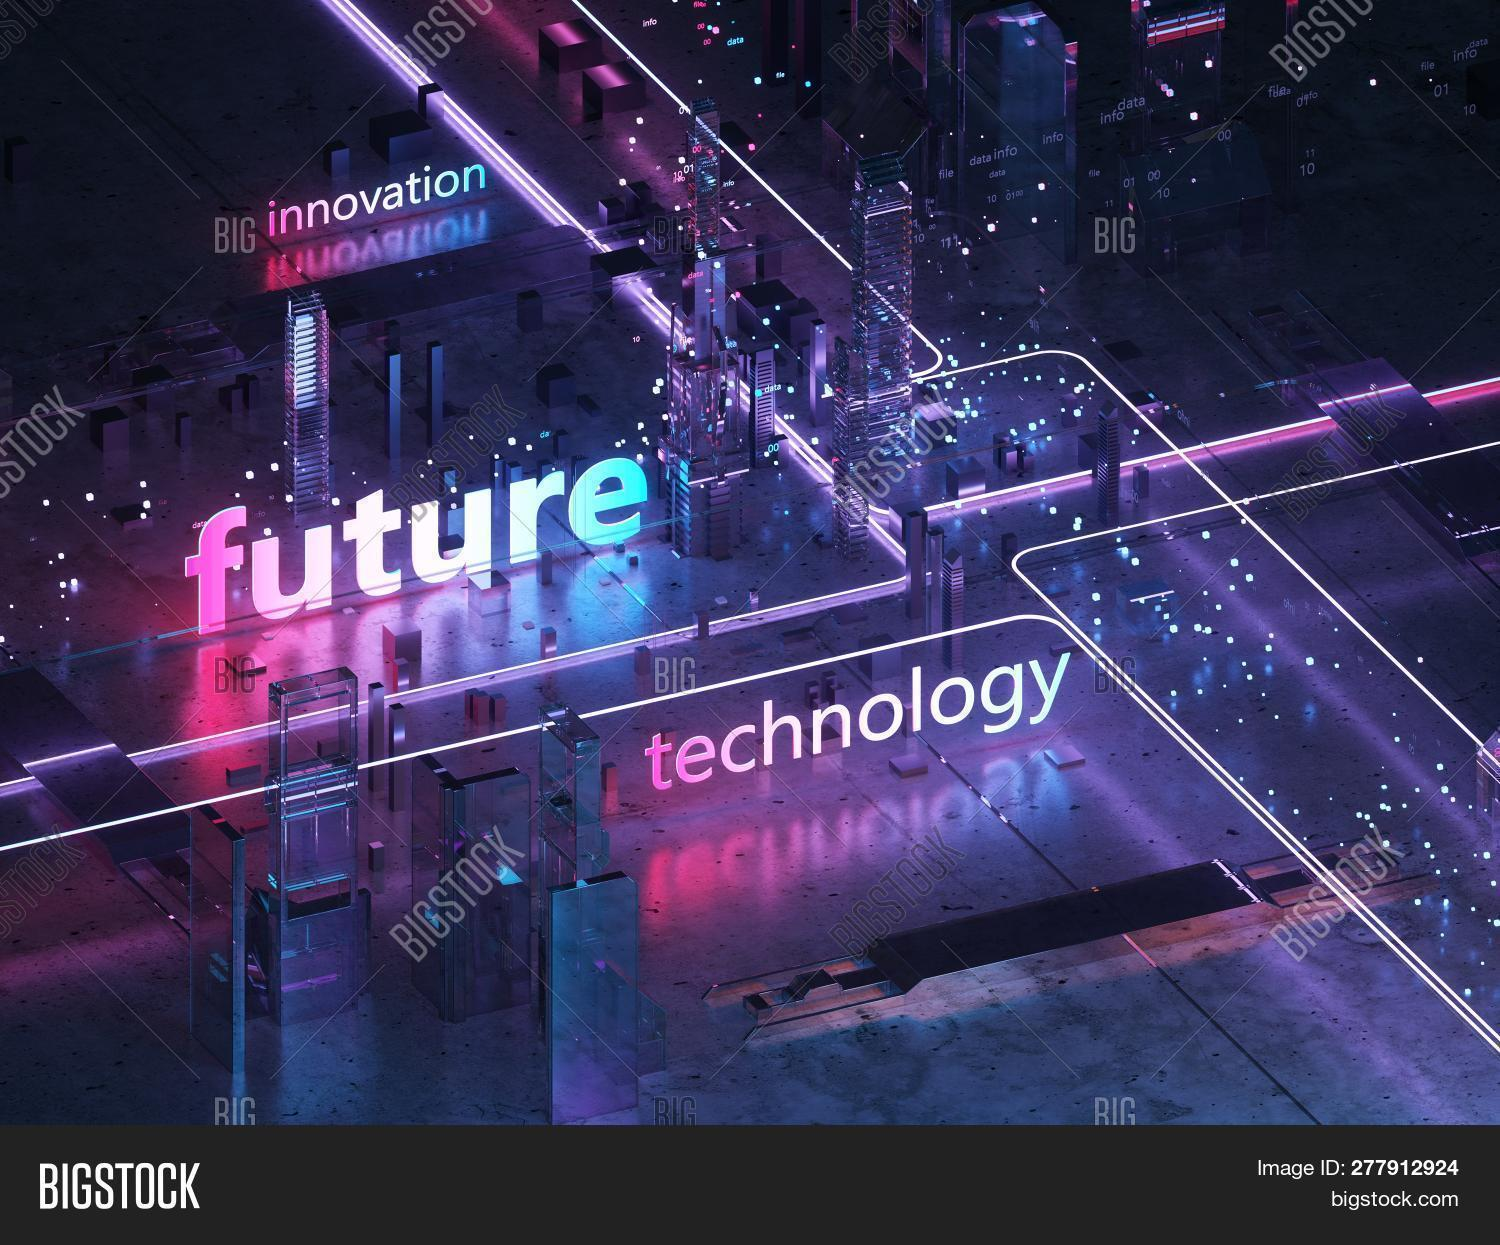 3d,abstract,algorithm,background,city,concept,copy,cyber,data,design,digital,fi,future,futuristic,geometric,glow,hologram,illustration,innovation,isometric,light,matrix,neon,pink,purple,quantum,render,sci,space,structure,technology